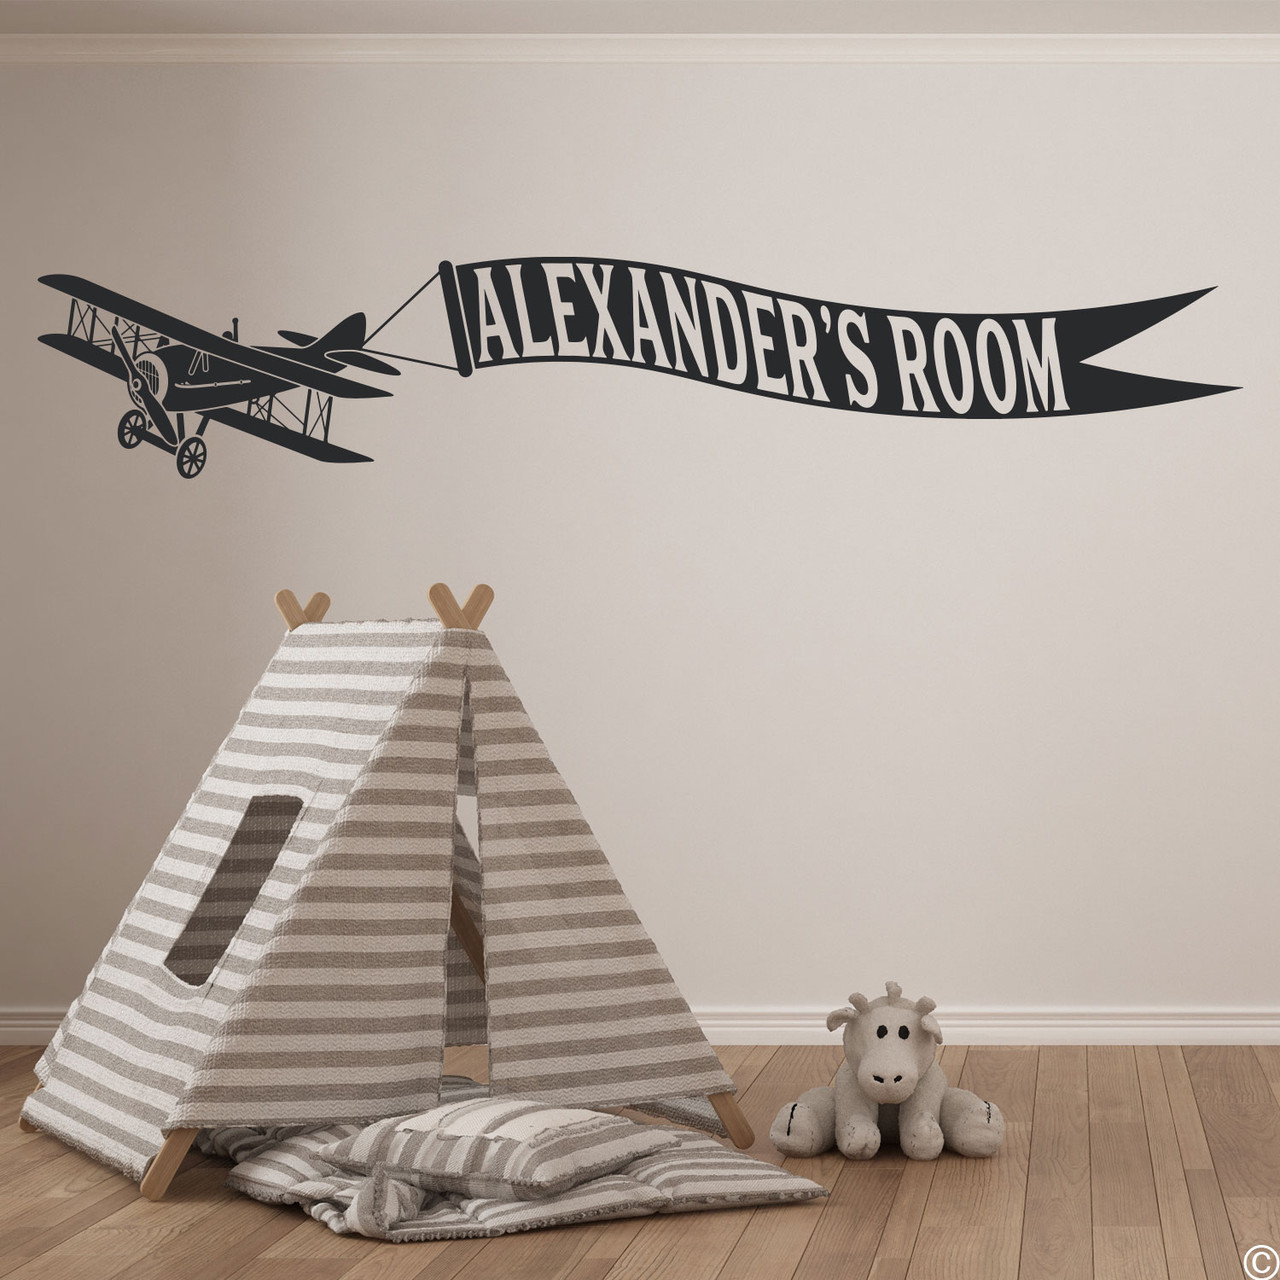 Biplane wall decal with customizable name banner on a kids playroom wall in black vinyl.